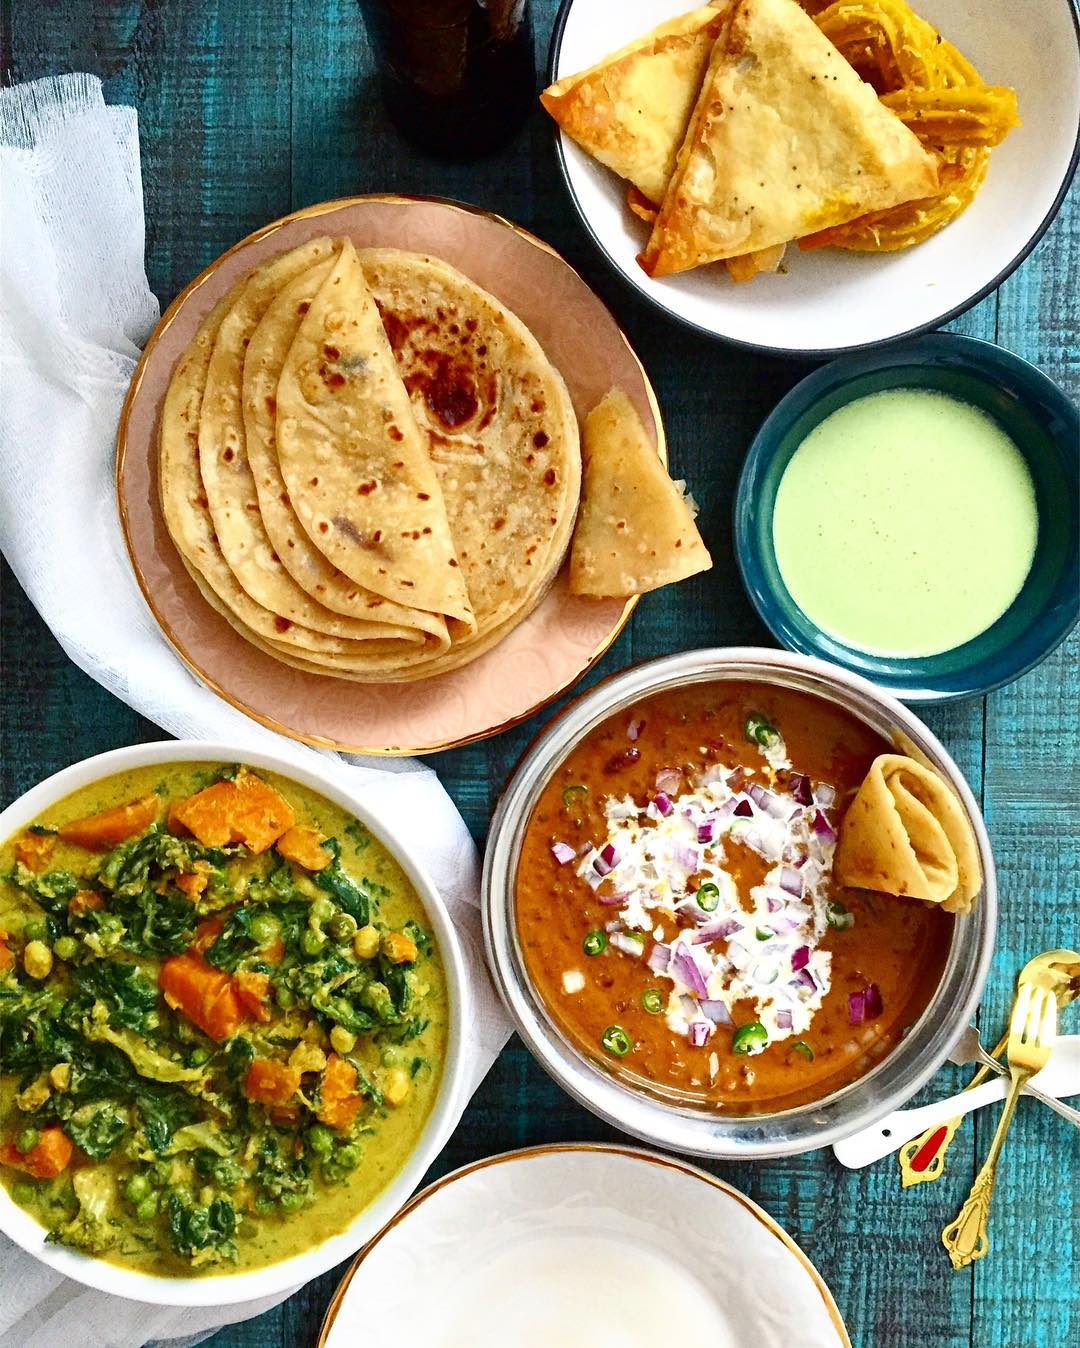 I love dinners like these. A shot from the other day. Spinach, sweet potato and peas in coconut milk, daal makhani, samosas, Indian churros, lime and coriander sour cream chutney and a mega stack of soft chapattis.  #food52 #indianfood #indian #vegetarian #spinach #daal #chapattis #daalmakhani #sweetpotato #rotli #samosas #feast #indianfoodbloggers #ericksonwoodworks #antiqueturquoise #green #indian #instafood #huffposttaste #feedfeed #curry #tastespotting